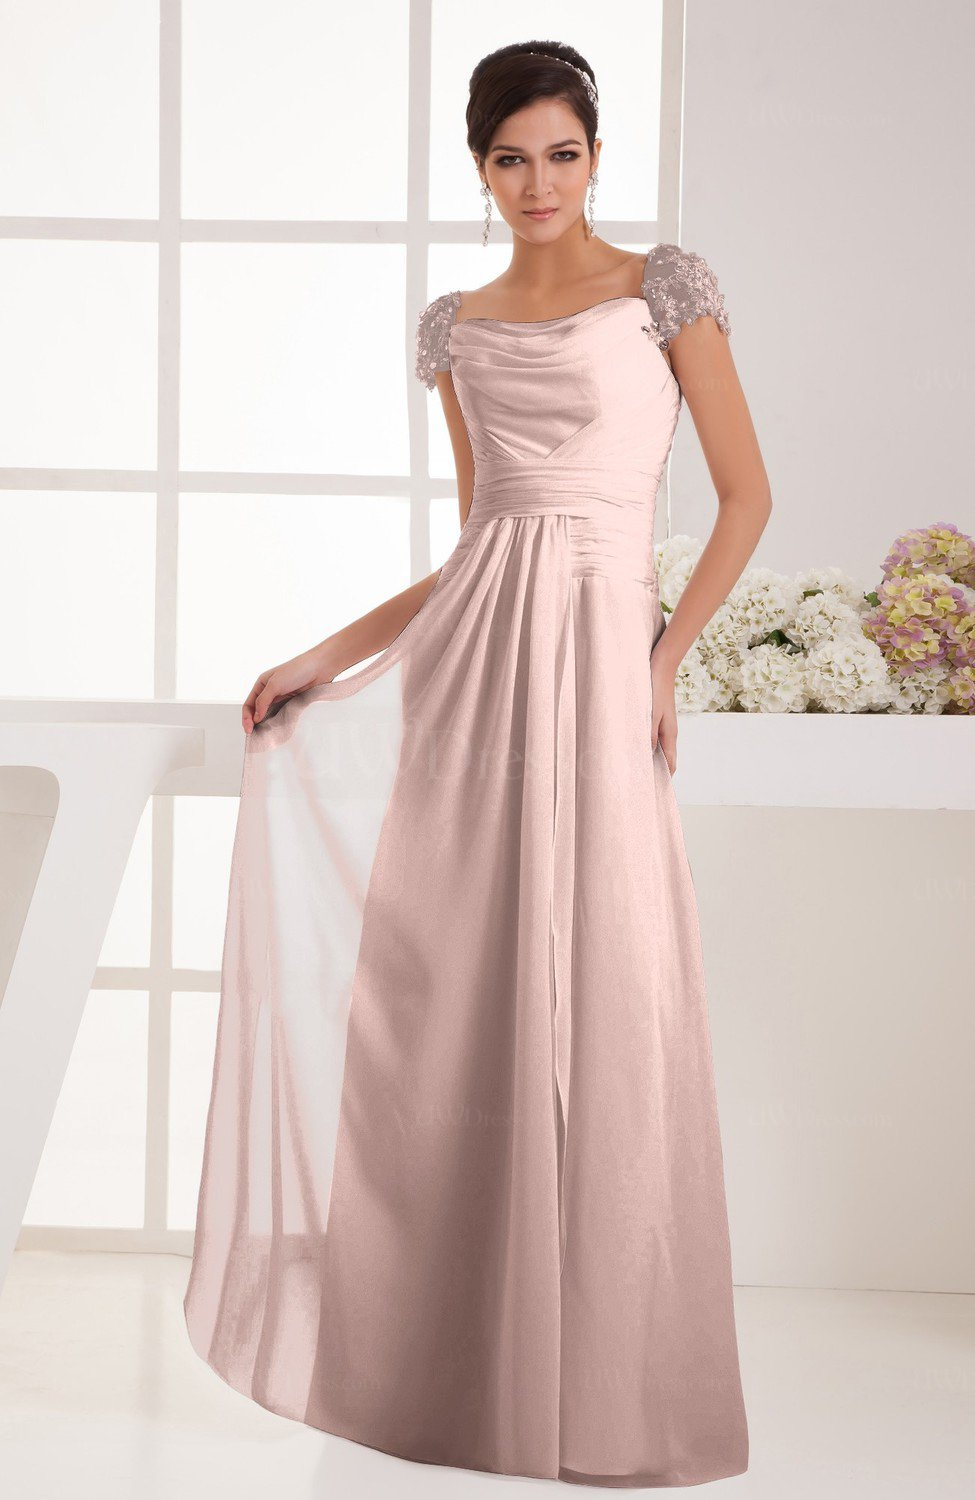 Dusty Rose With Sleeves Bridesmaid Dress Chiffon Trendy